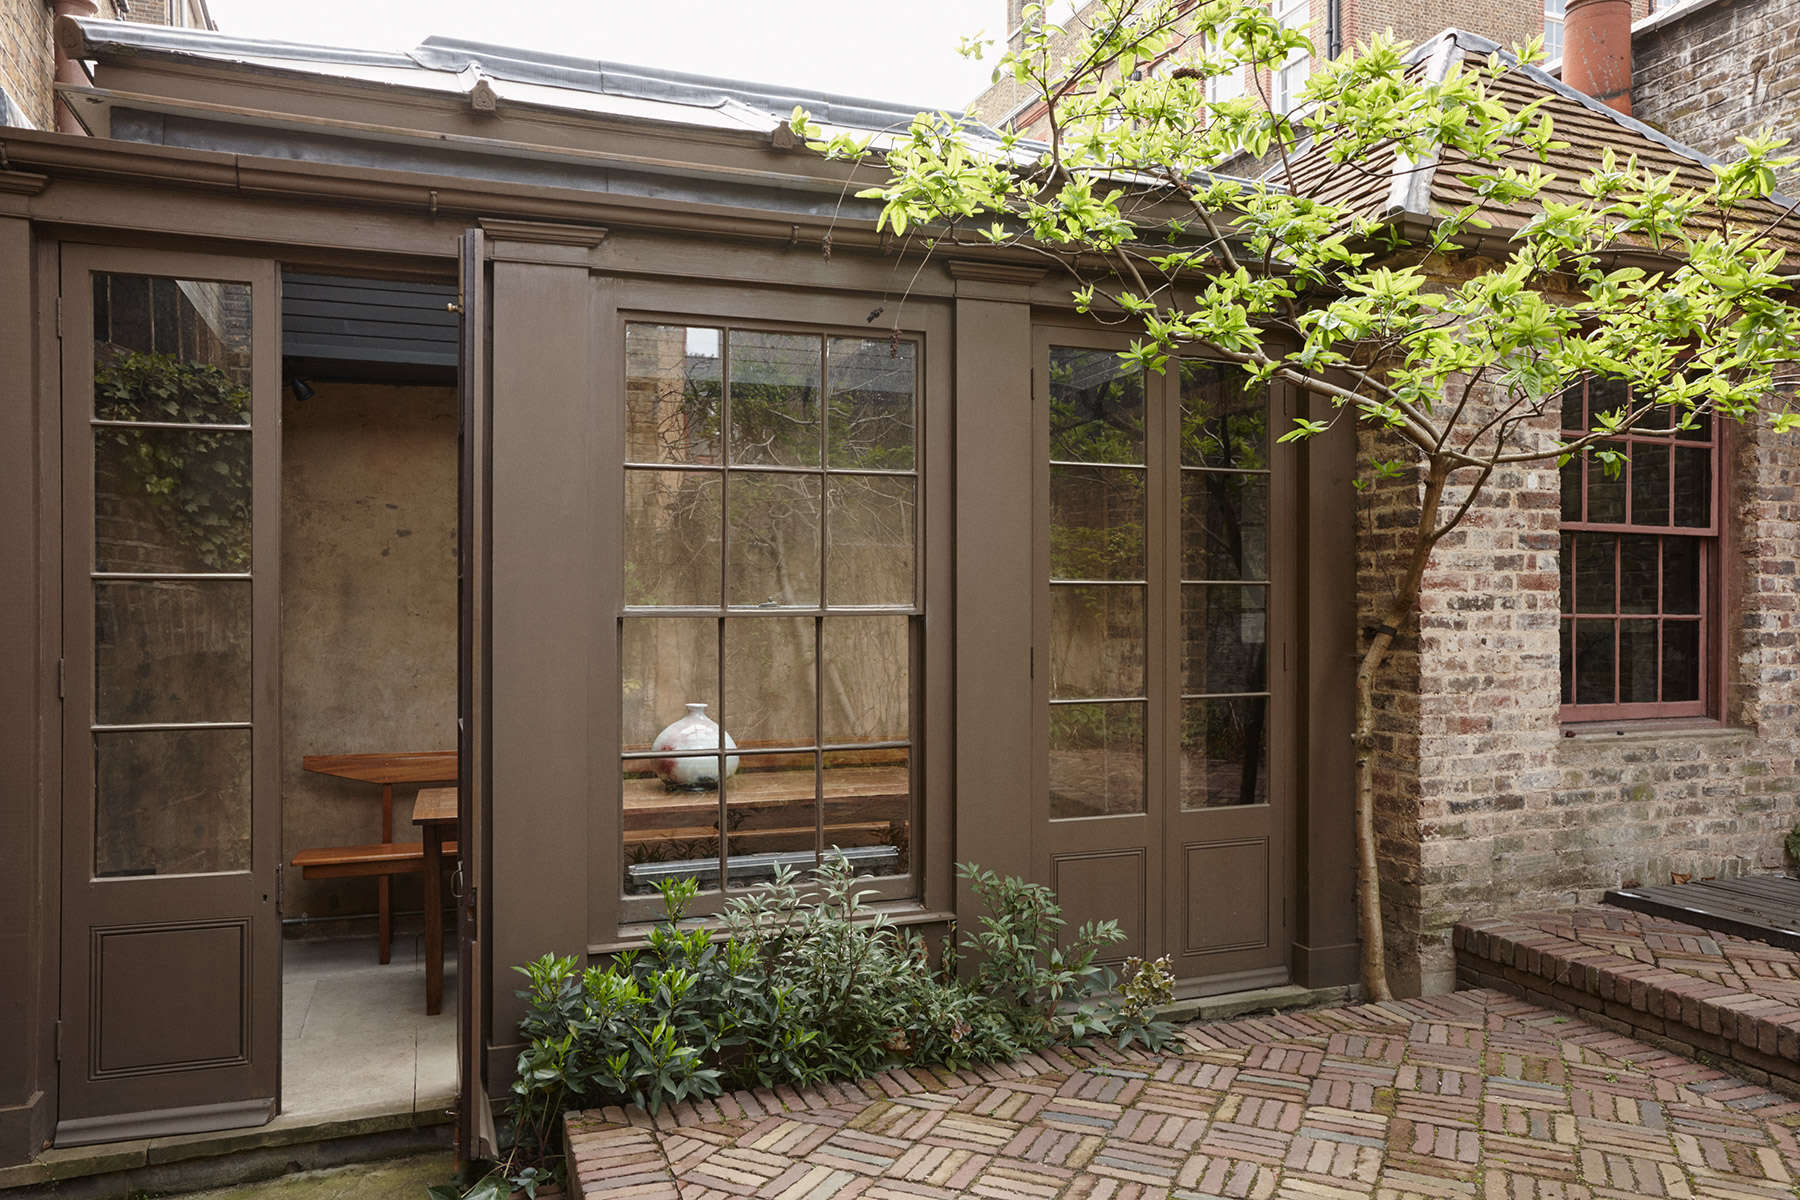 The New Road Residence A Curated London House from Hostem Newroad Residence London Remodelista 7C